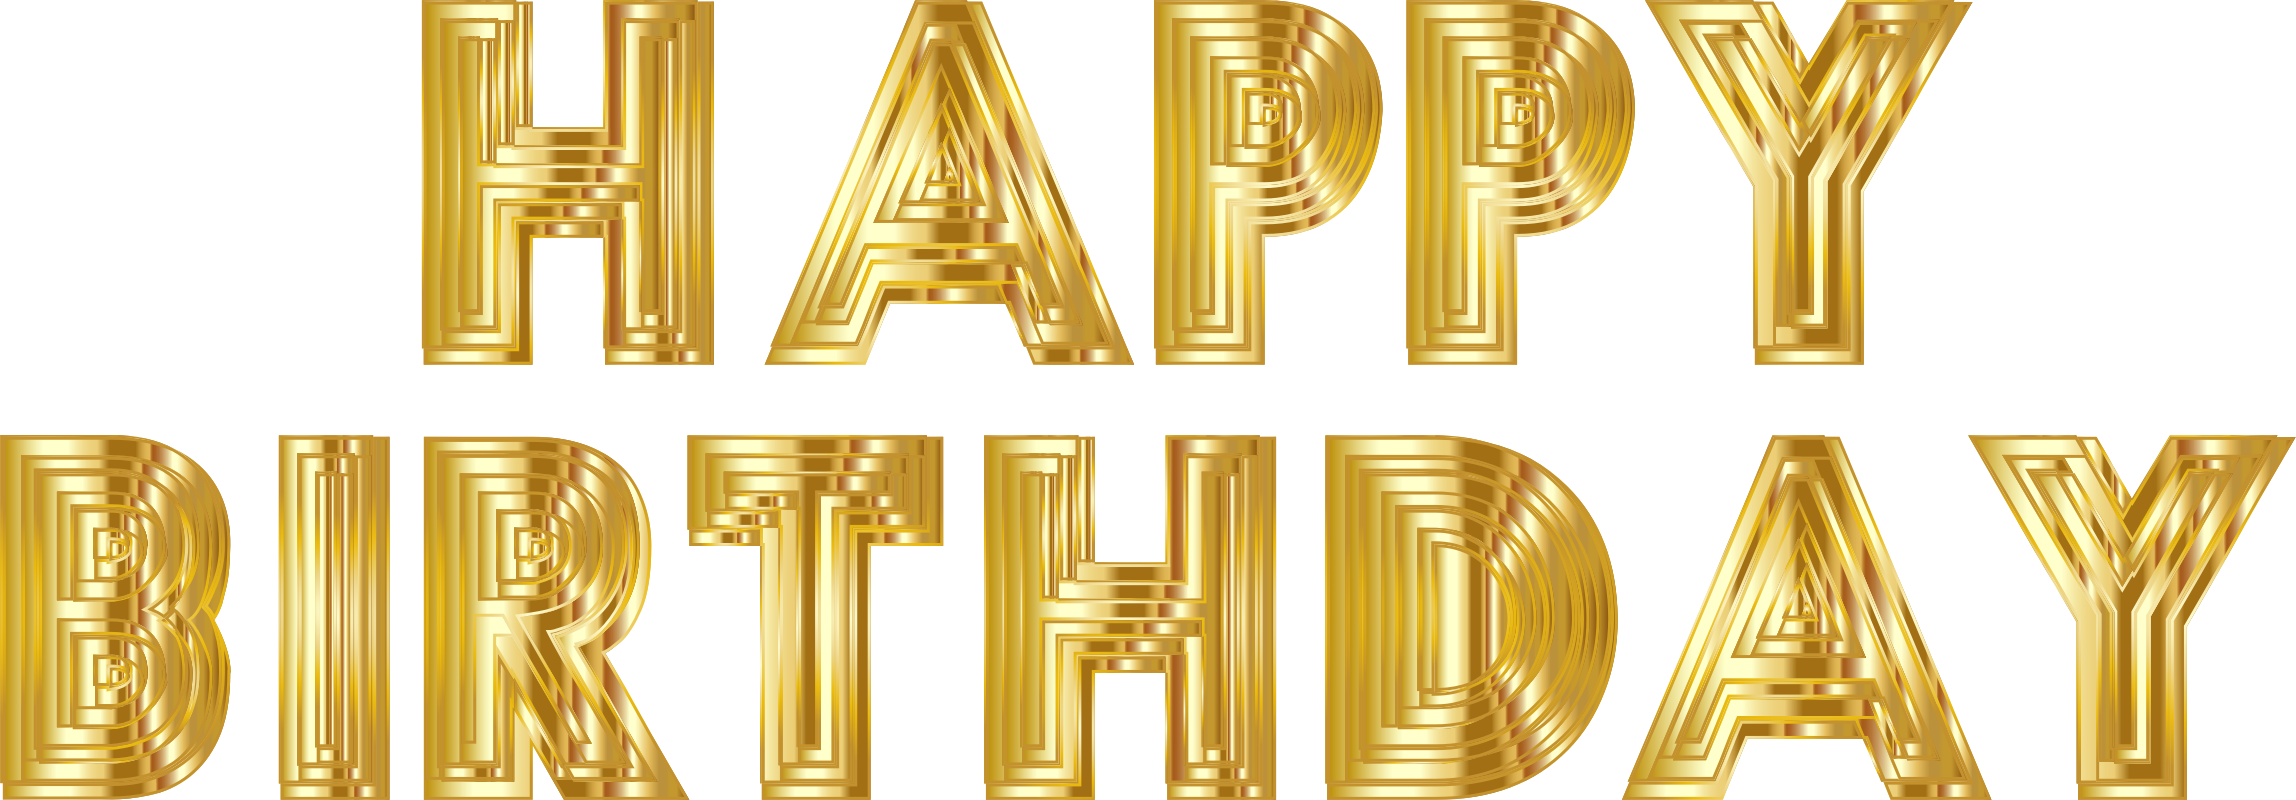 Free Birthday Cliparts Gold, Download Free Clip Art, Free Clip Art.